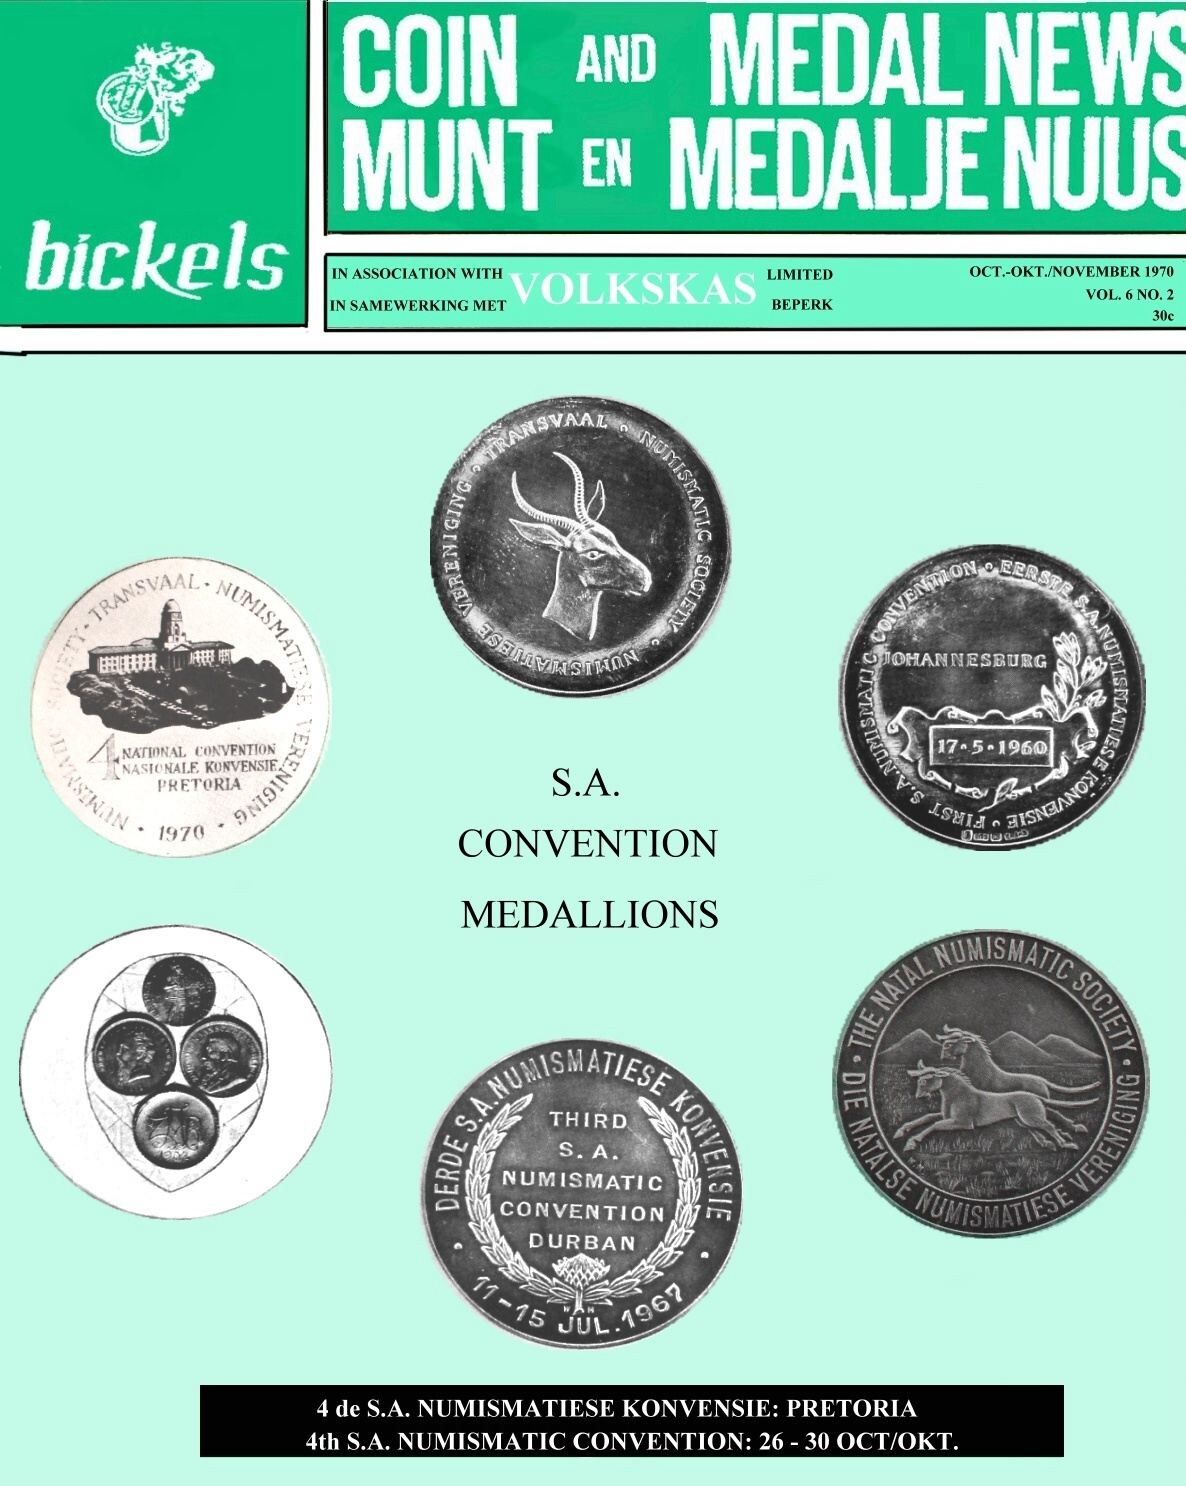 Bickels Coin & Medal News October November 1970 Vol 6 No 2